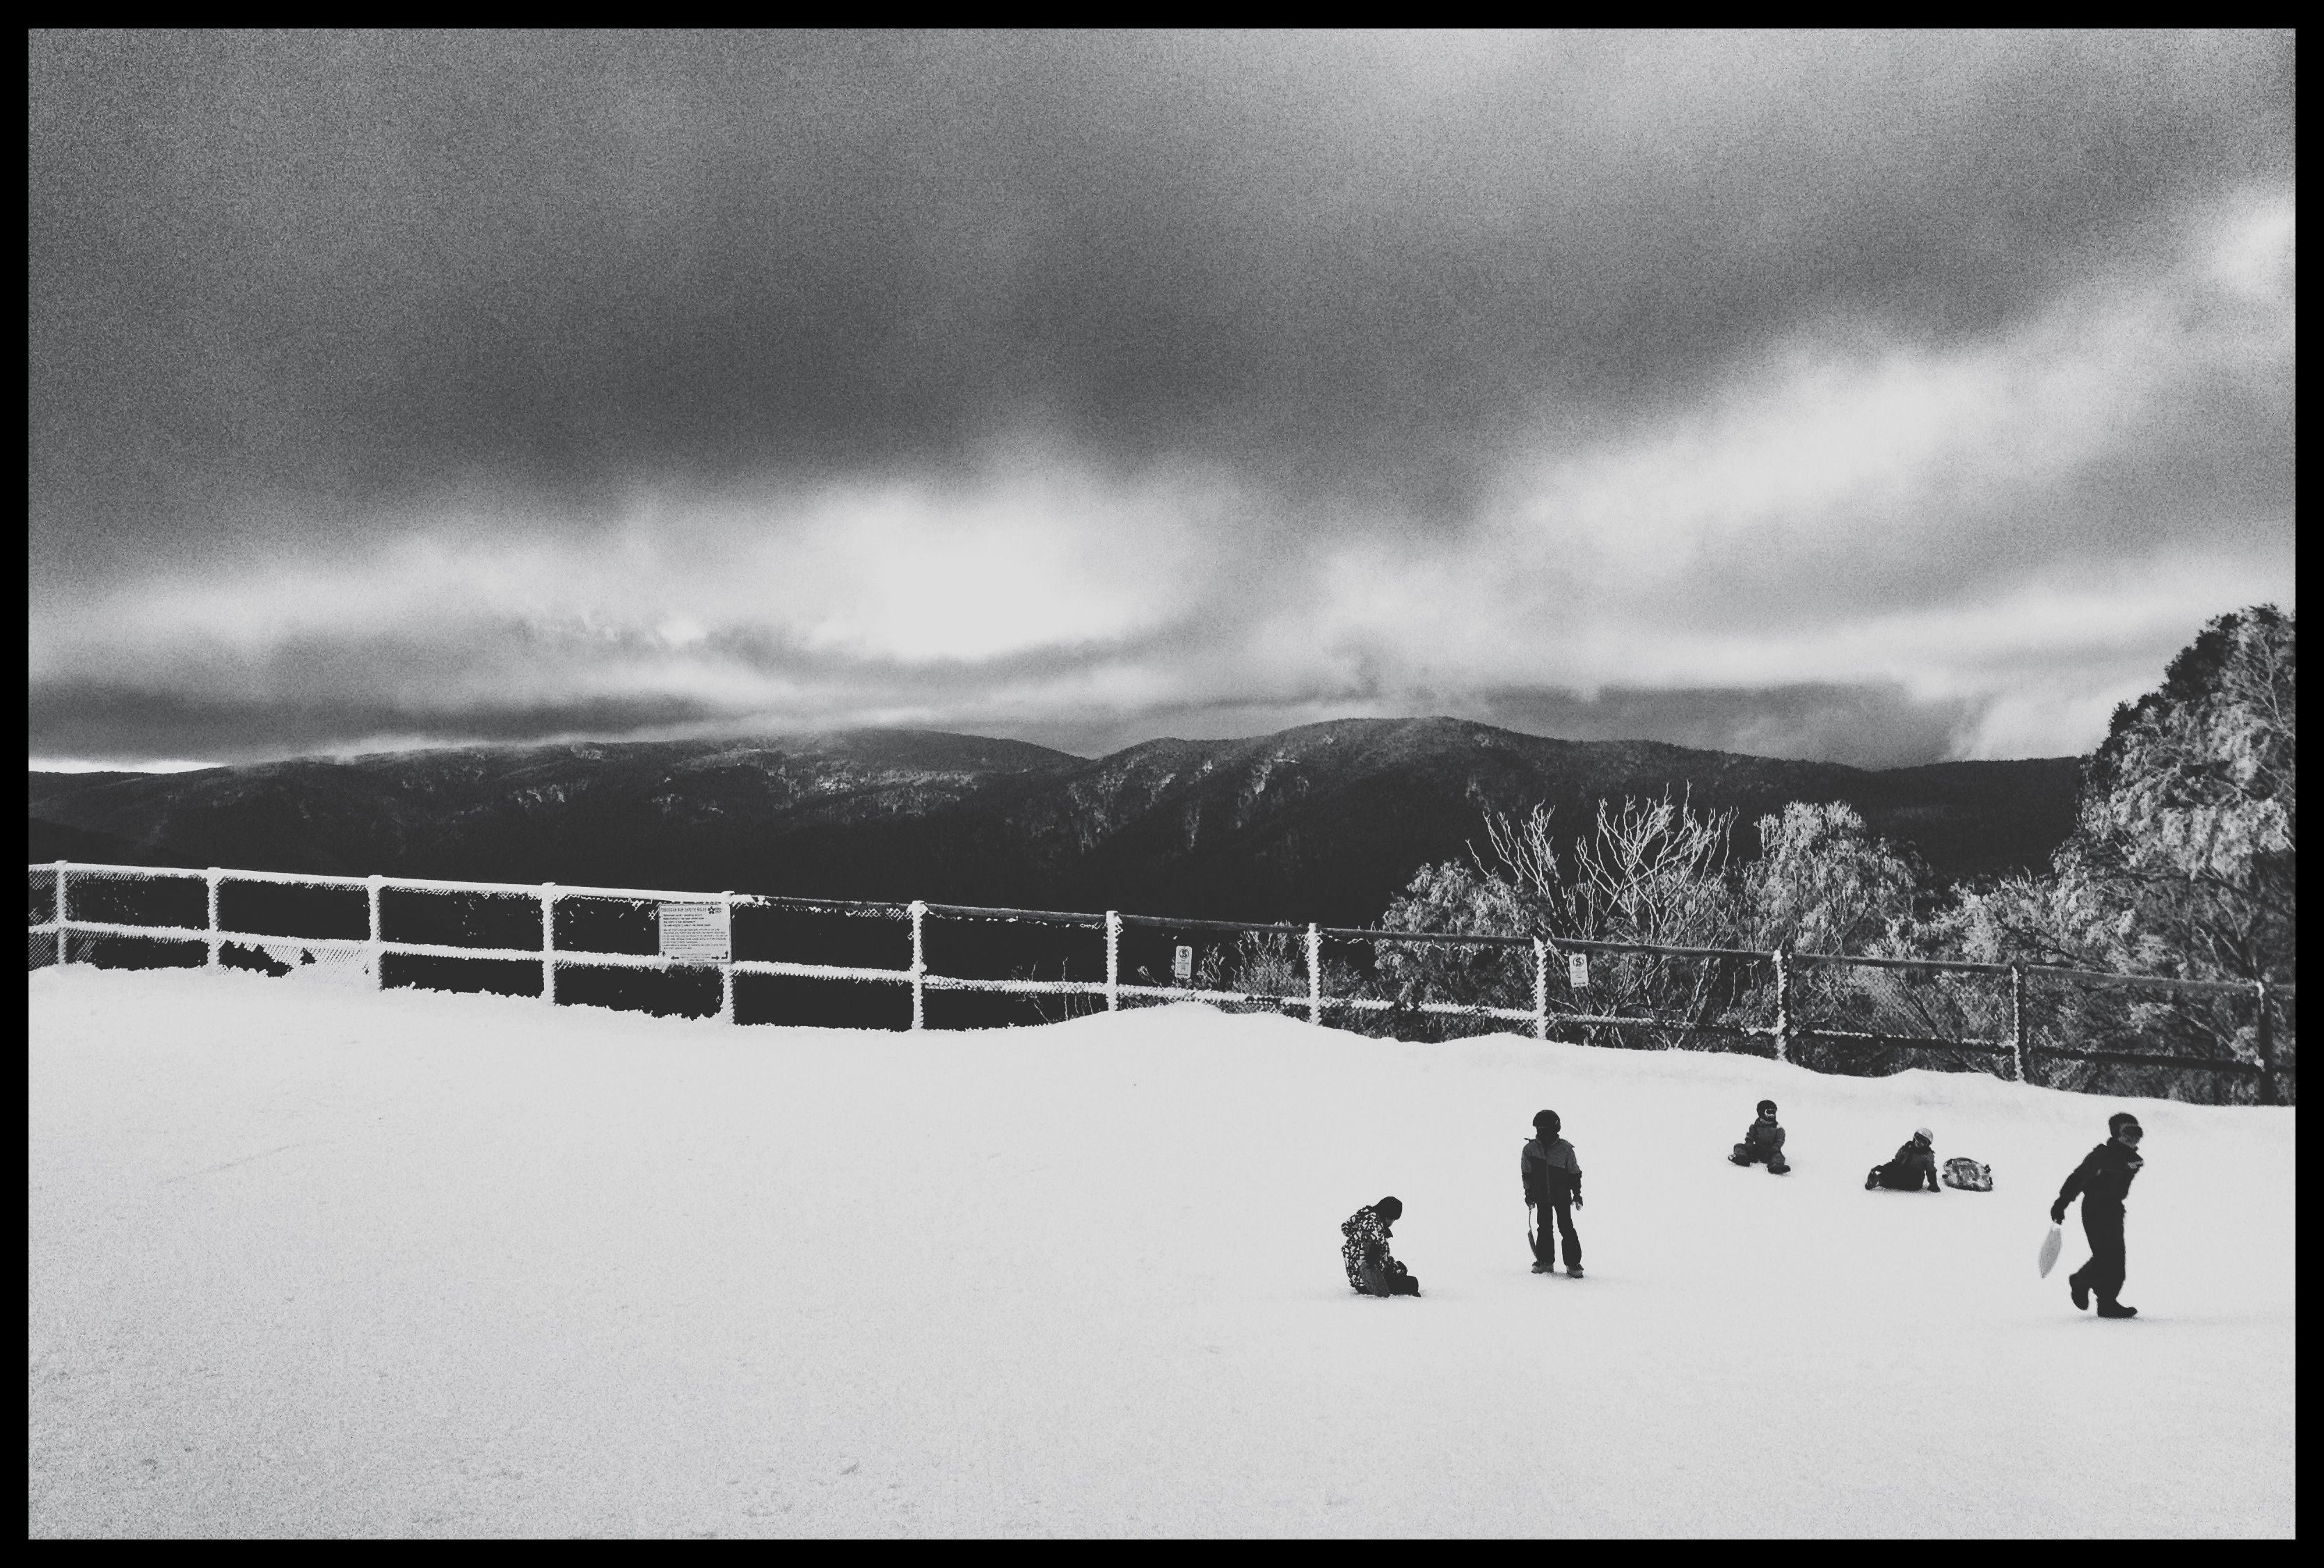 Mount Buller, Australia From My Vision In This Moment